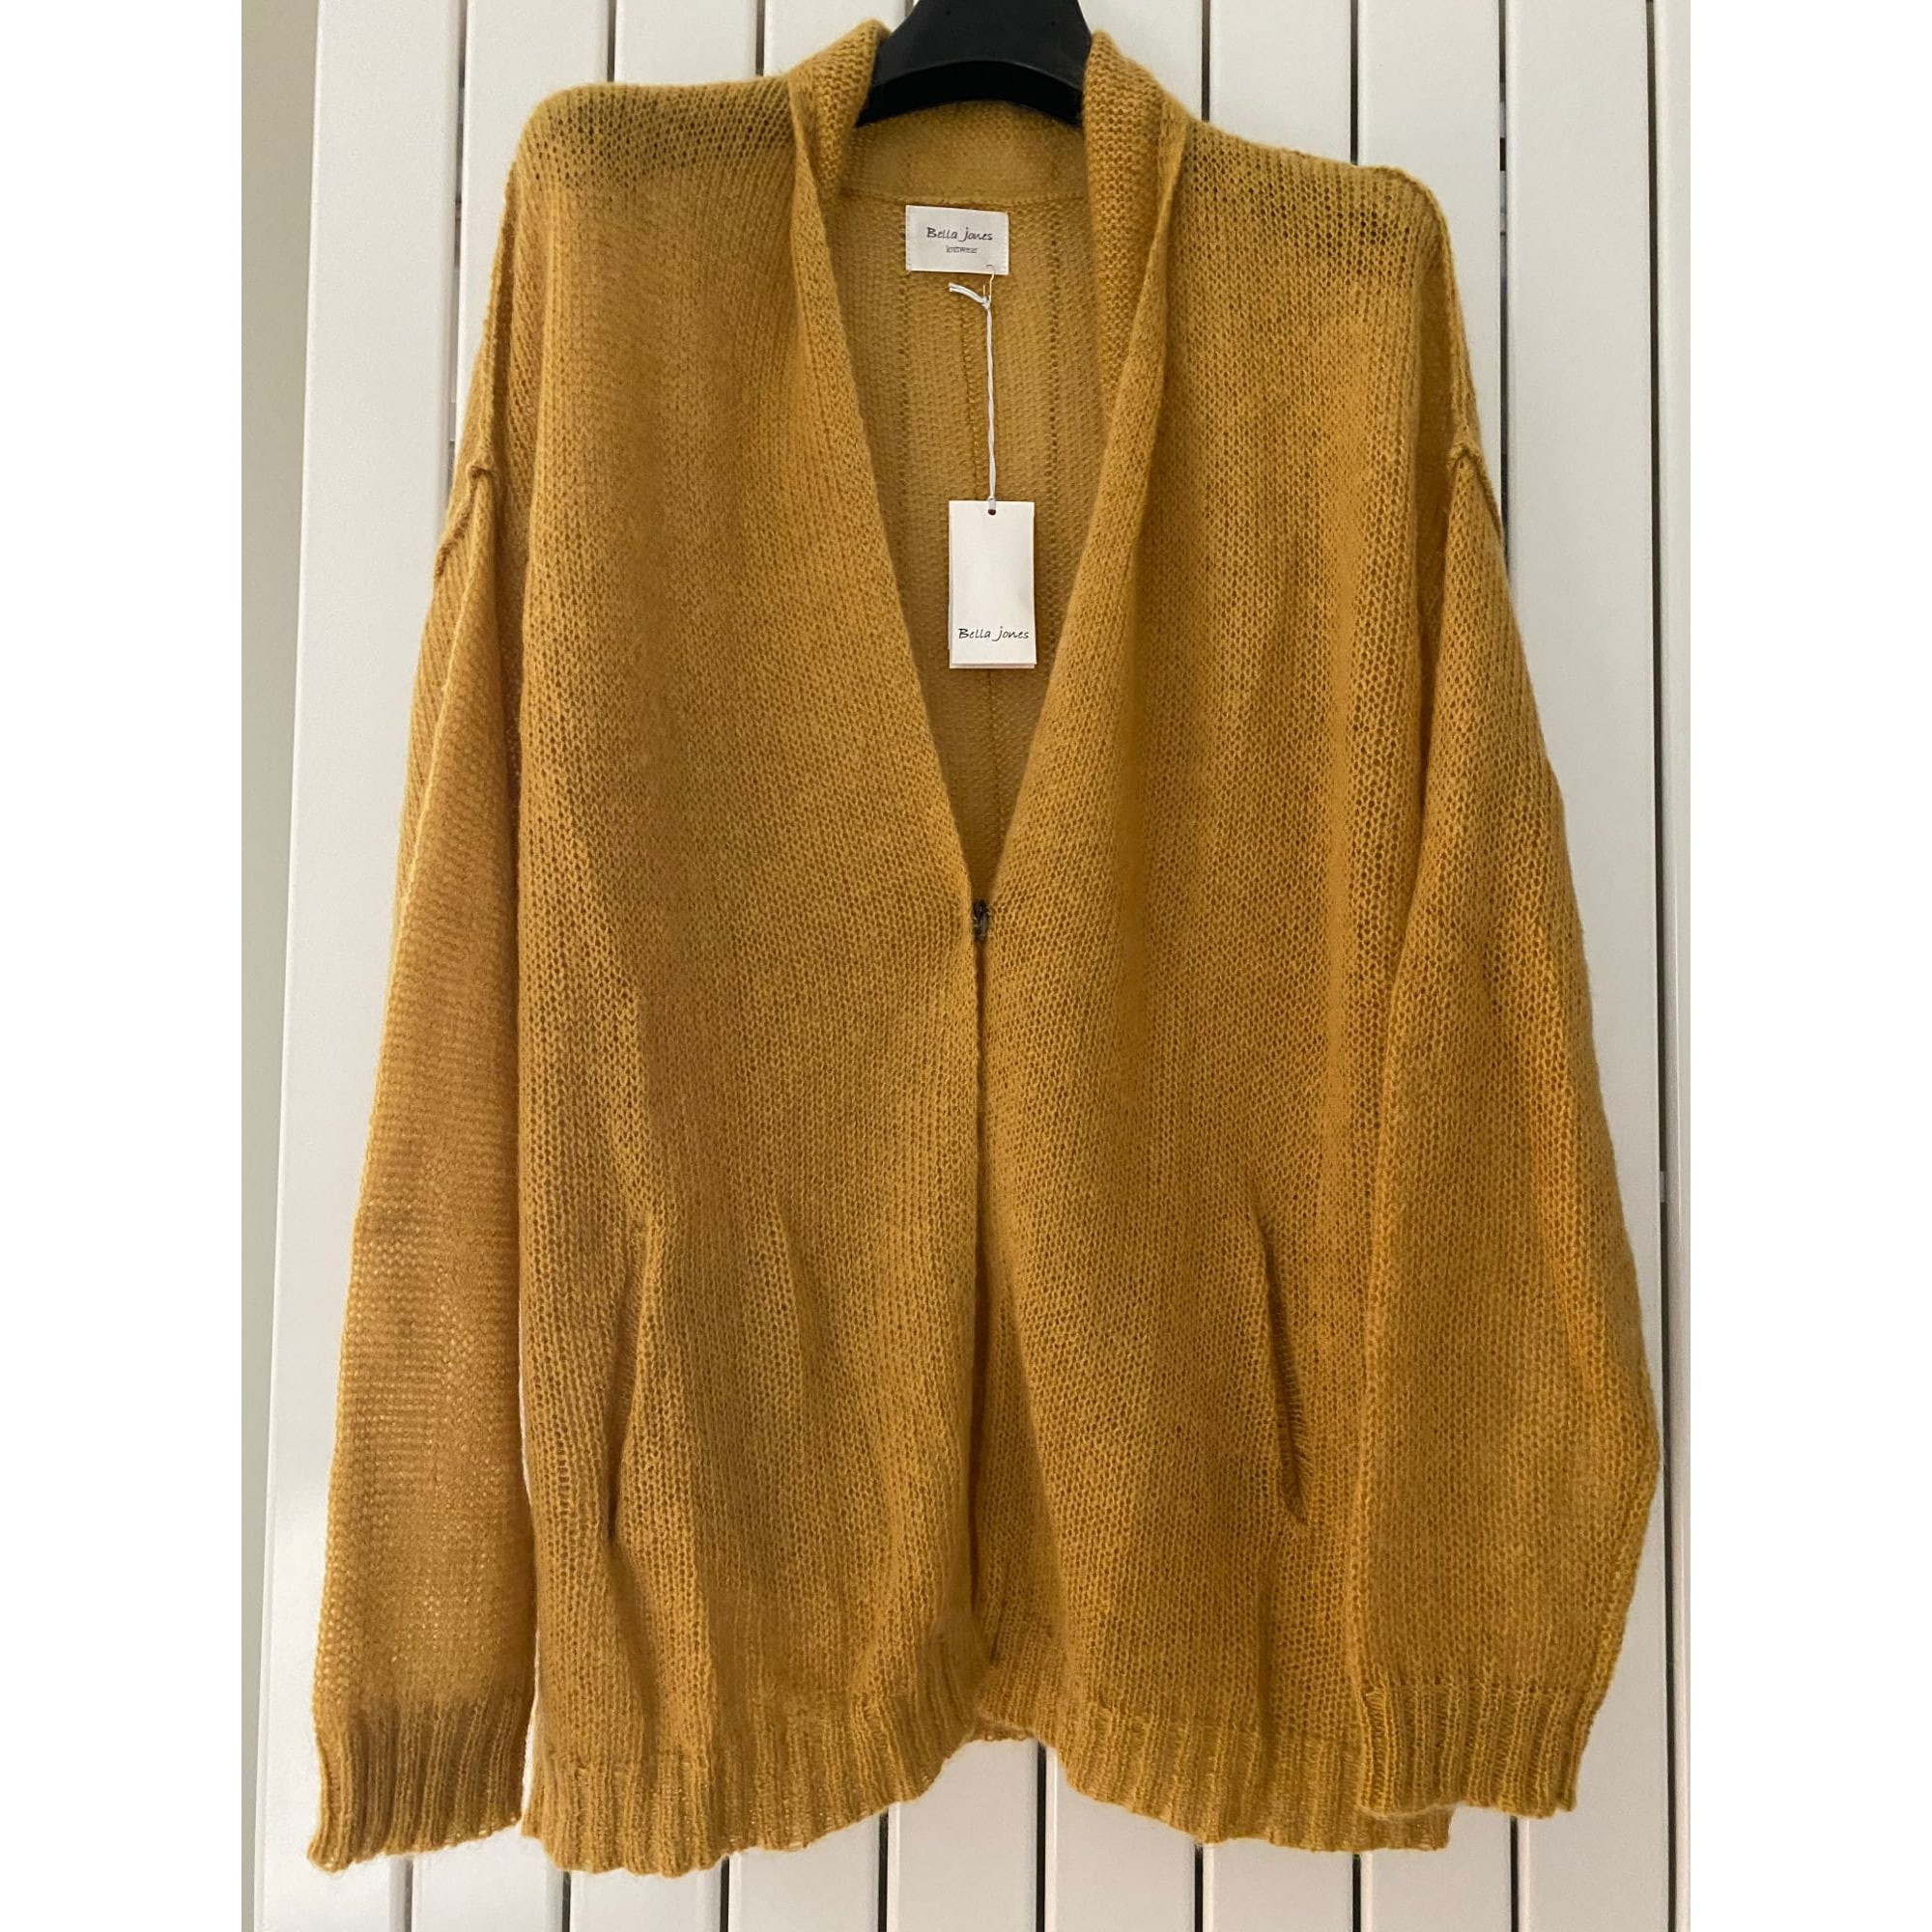 Gilet, cardigan BELLA JONES Jaune